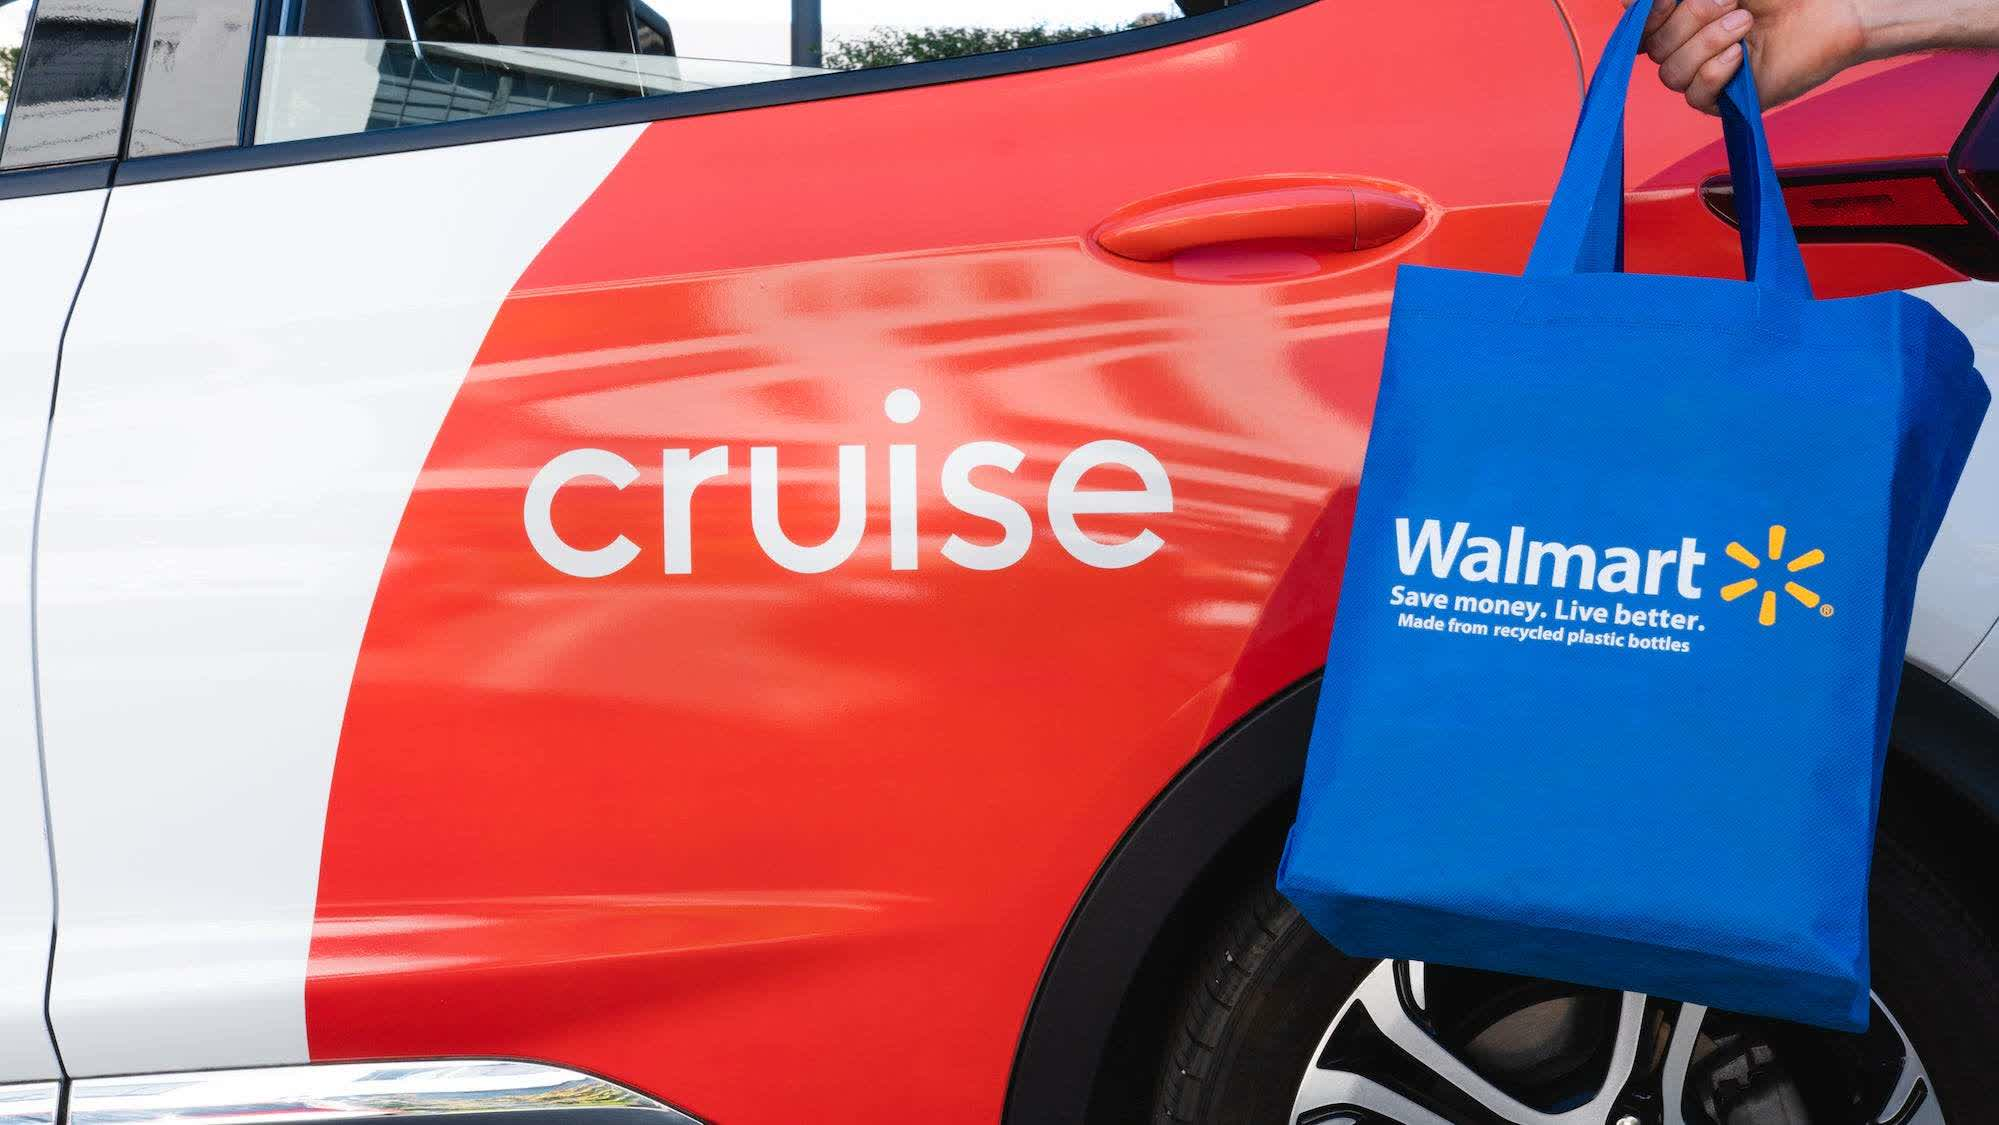 Walmart invests in self-driving car start-up Cruise to expand last-mile delivery ecosystem